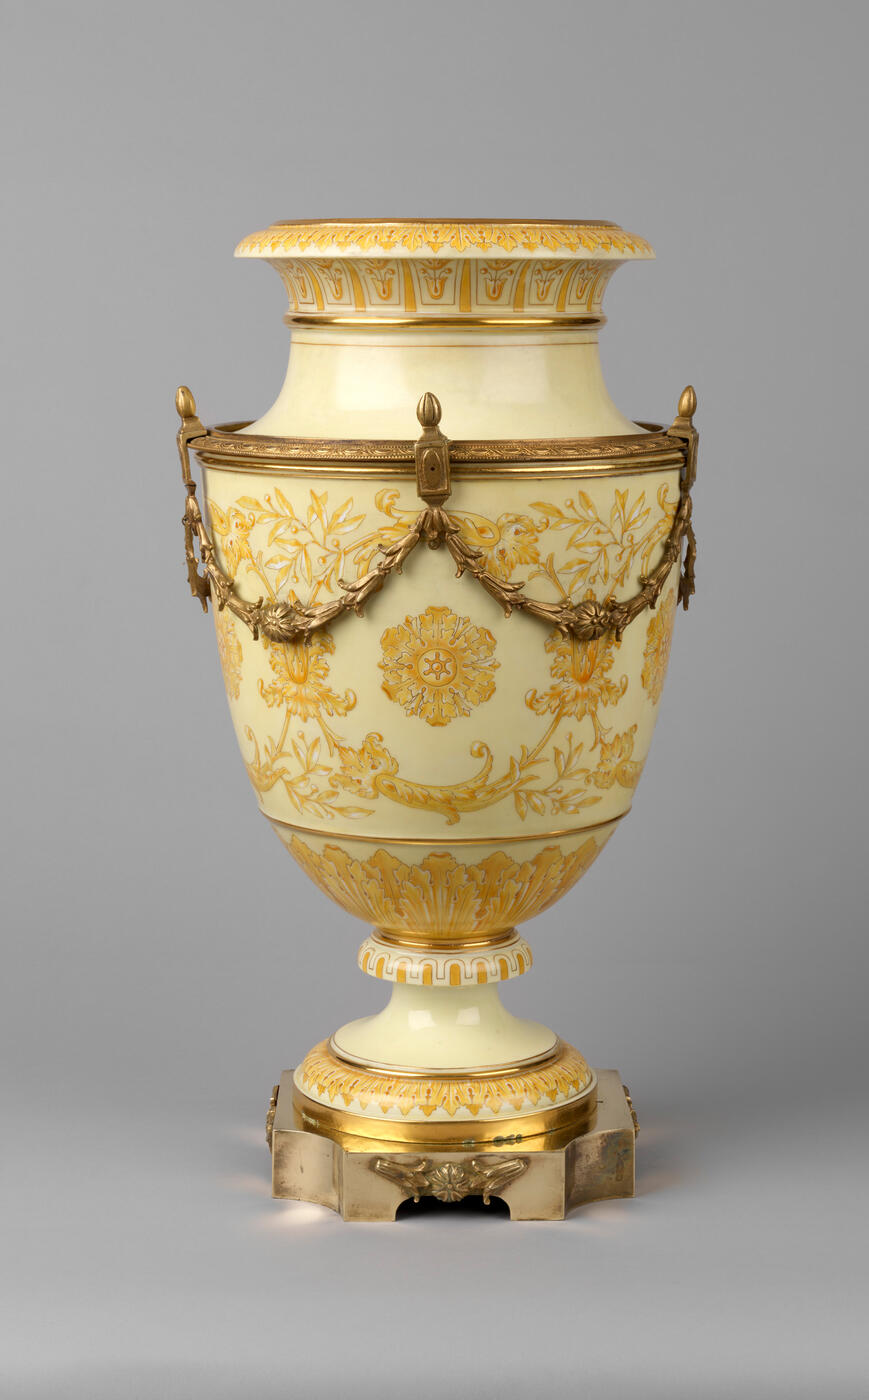 IMPERIAL PORCELAIN MANUFACTORY, PERIOD OF NICHOLAS II (1896-1917), 1898